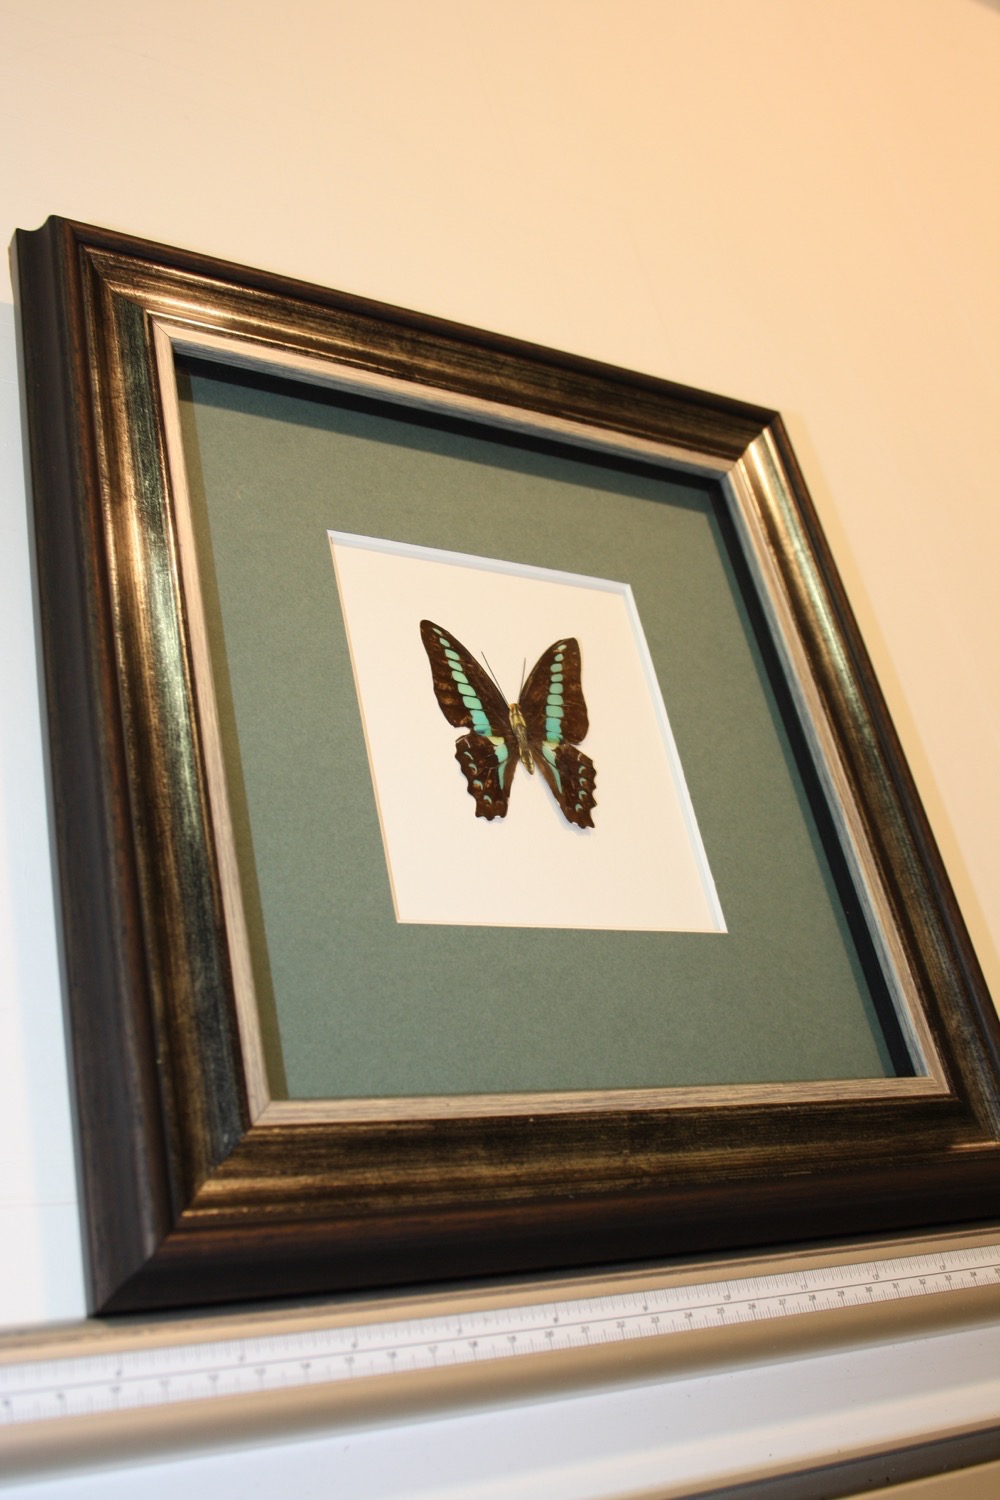 hampshire-picture-general-framing-021.JPG